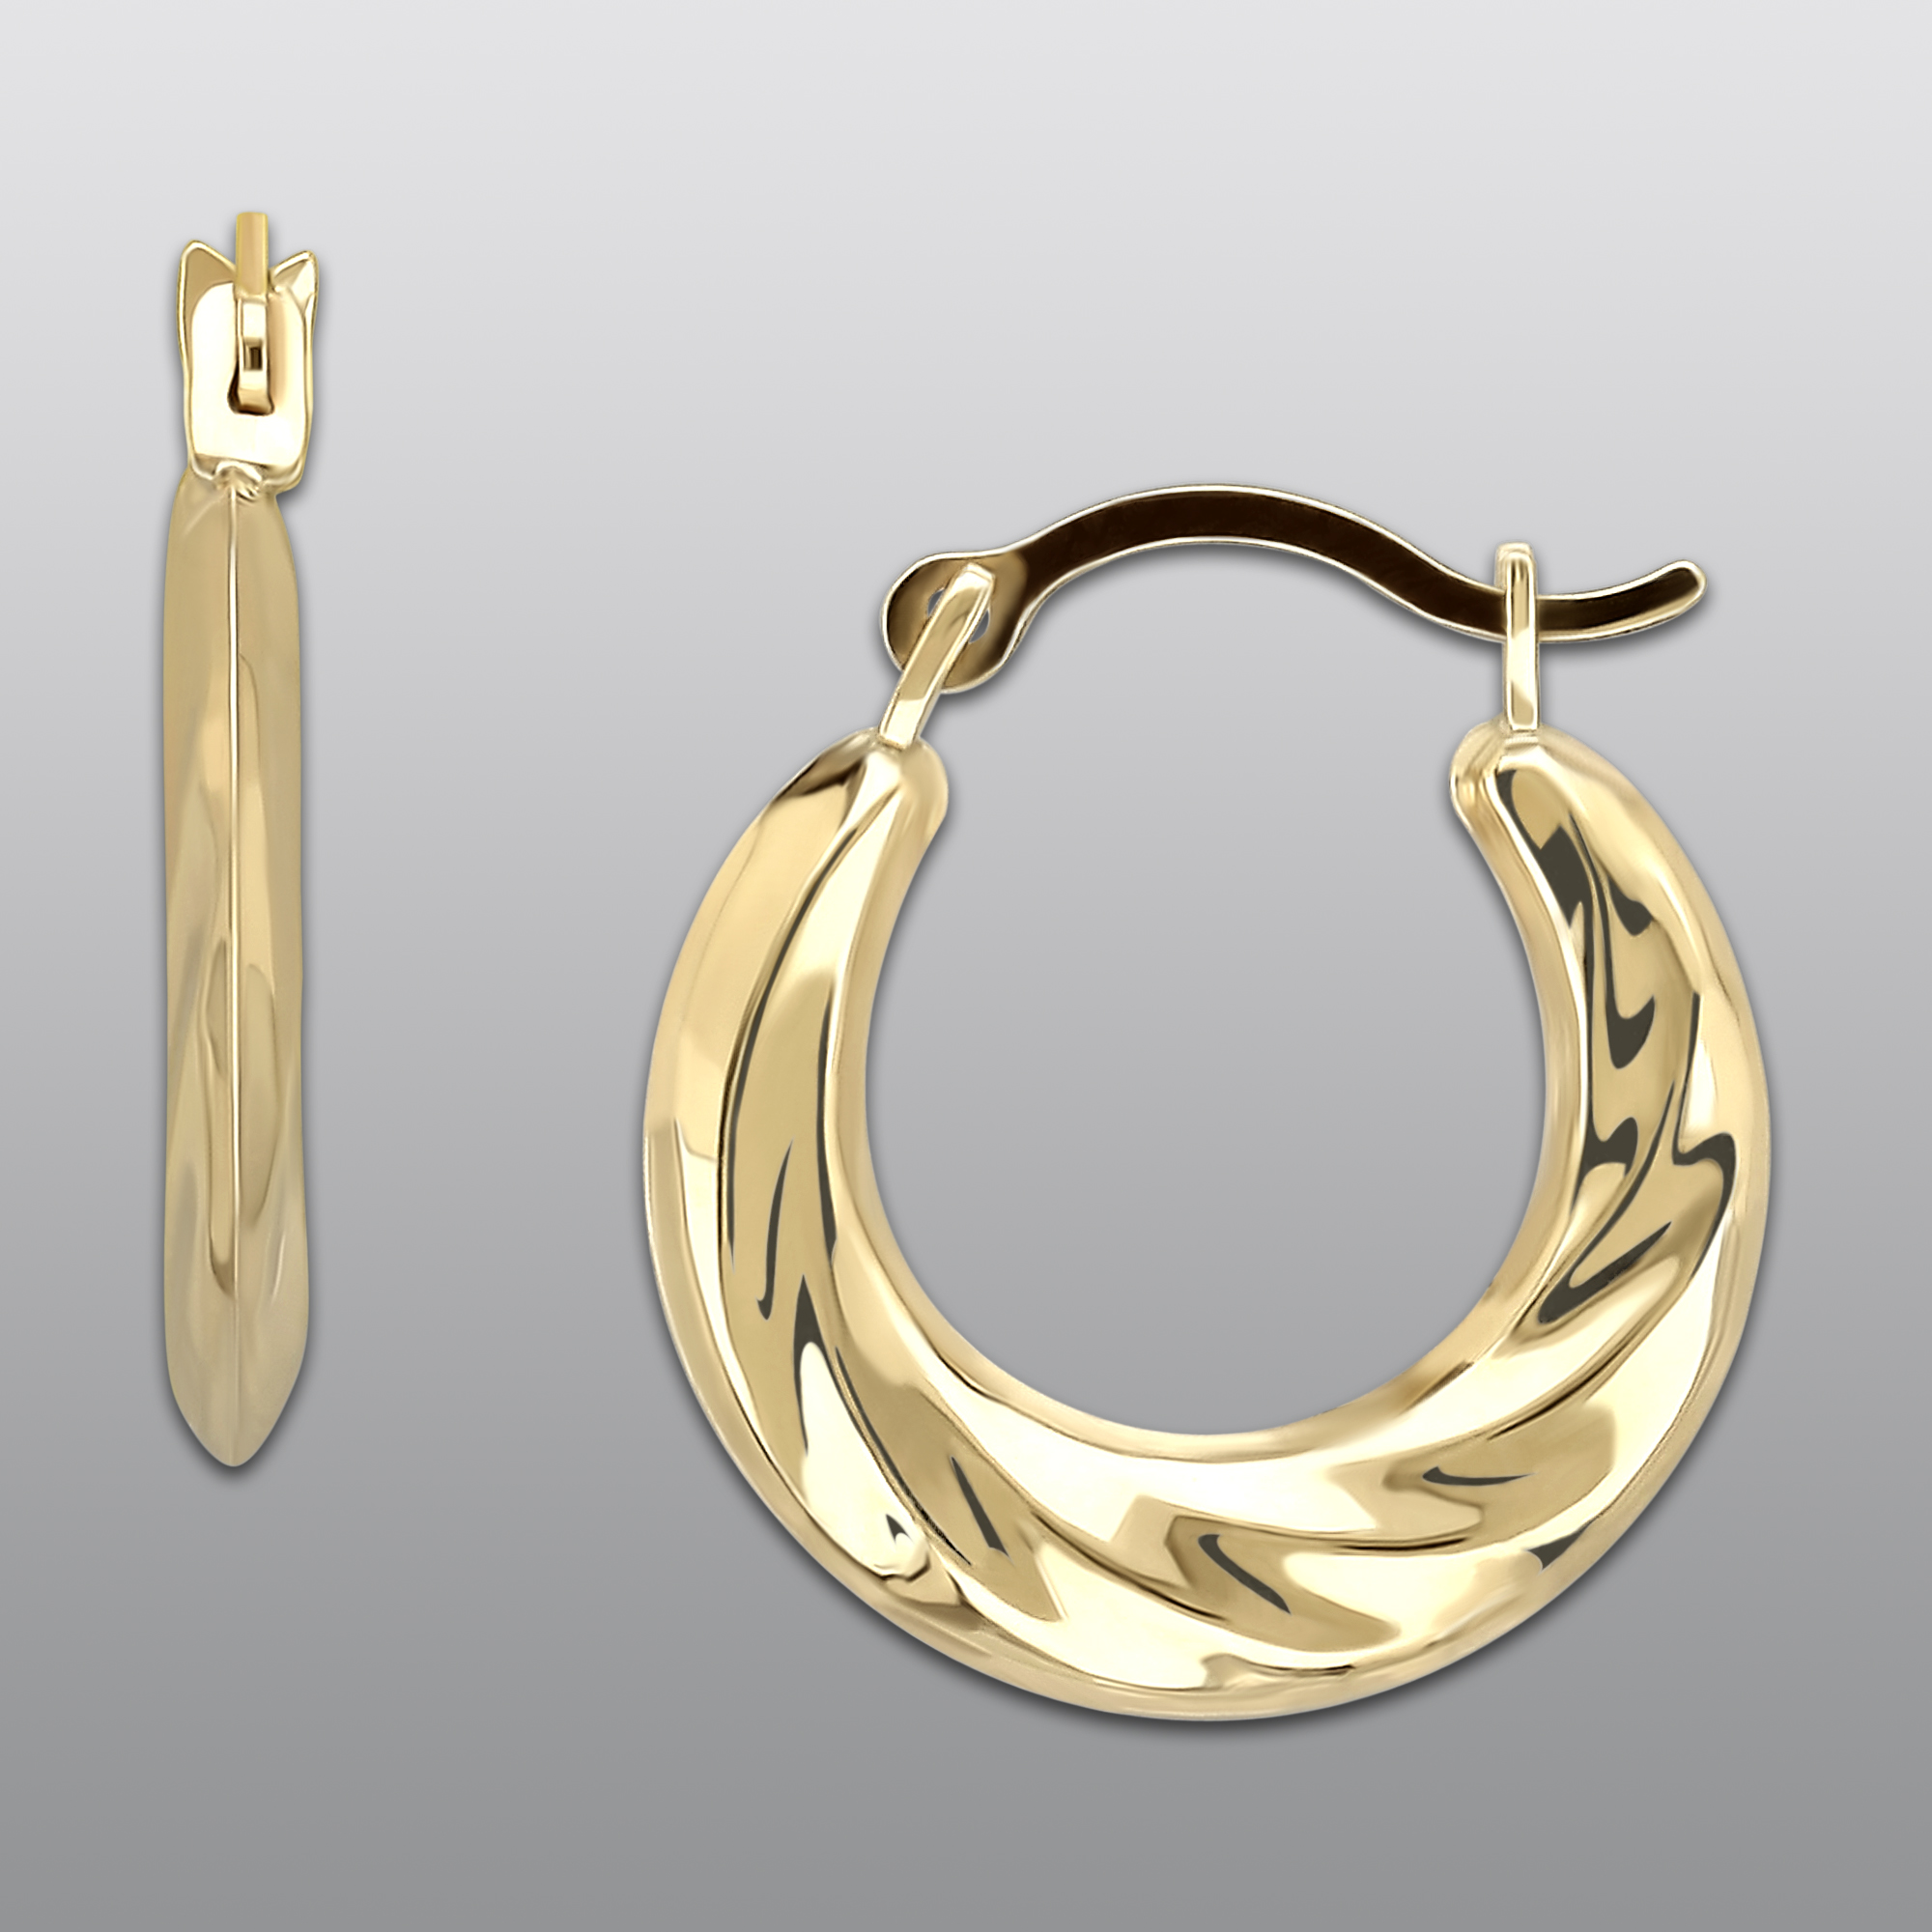 10k Yellow Gold Mini Hoop Earrings